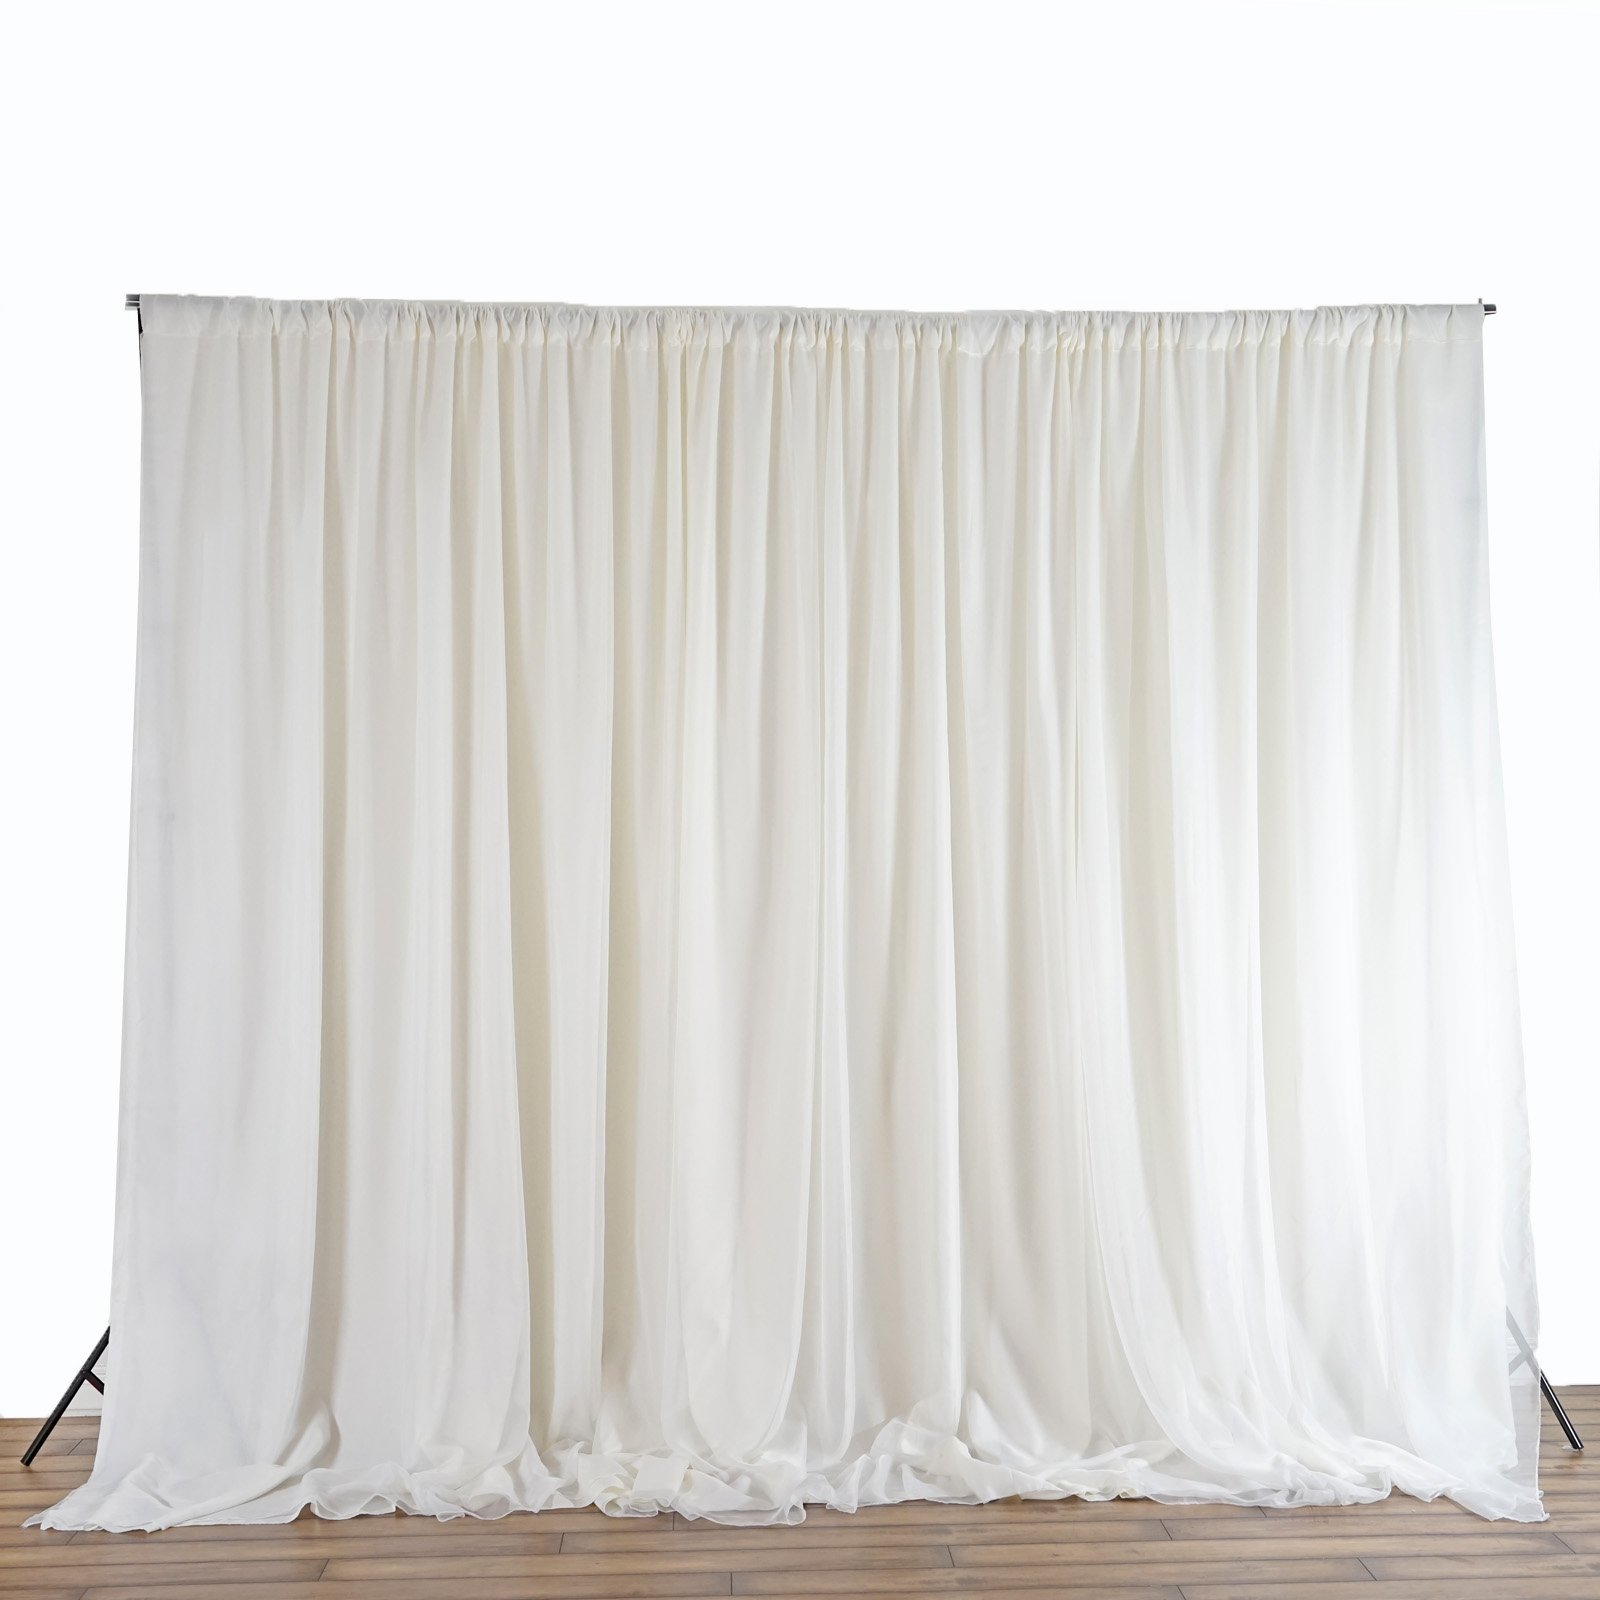 Efavormart 20ft x 10ft Chic-Inspired Party Wedding Backdrop Photography Background Fabric Photo Backdrop Studio Background - Ivory